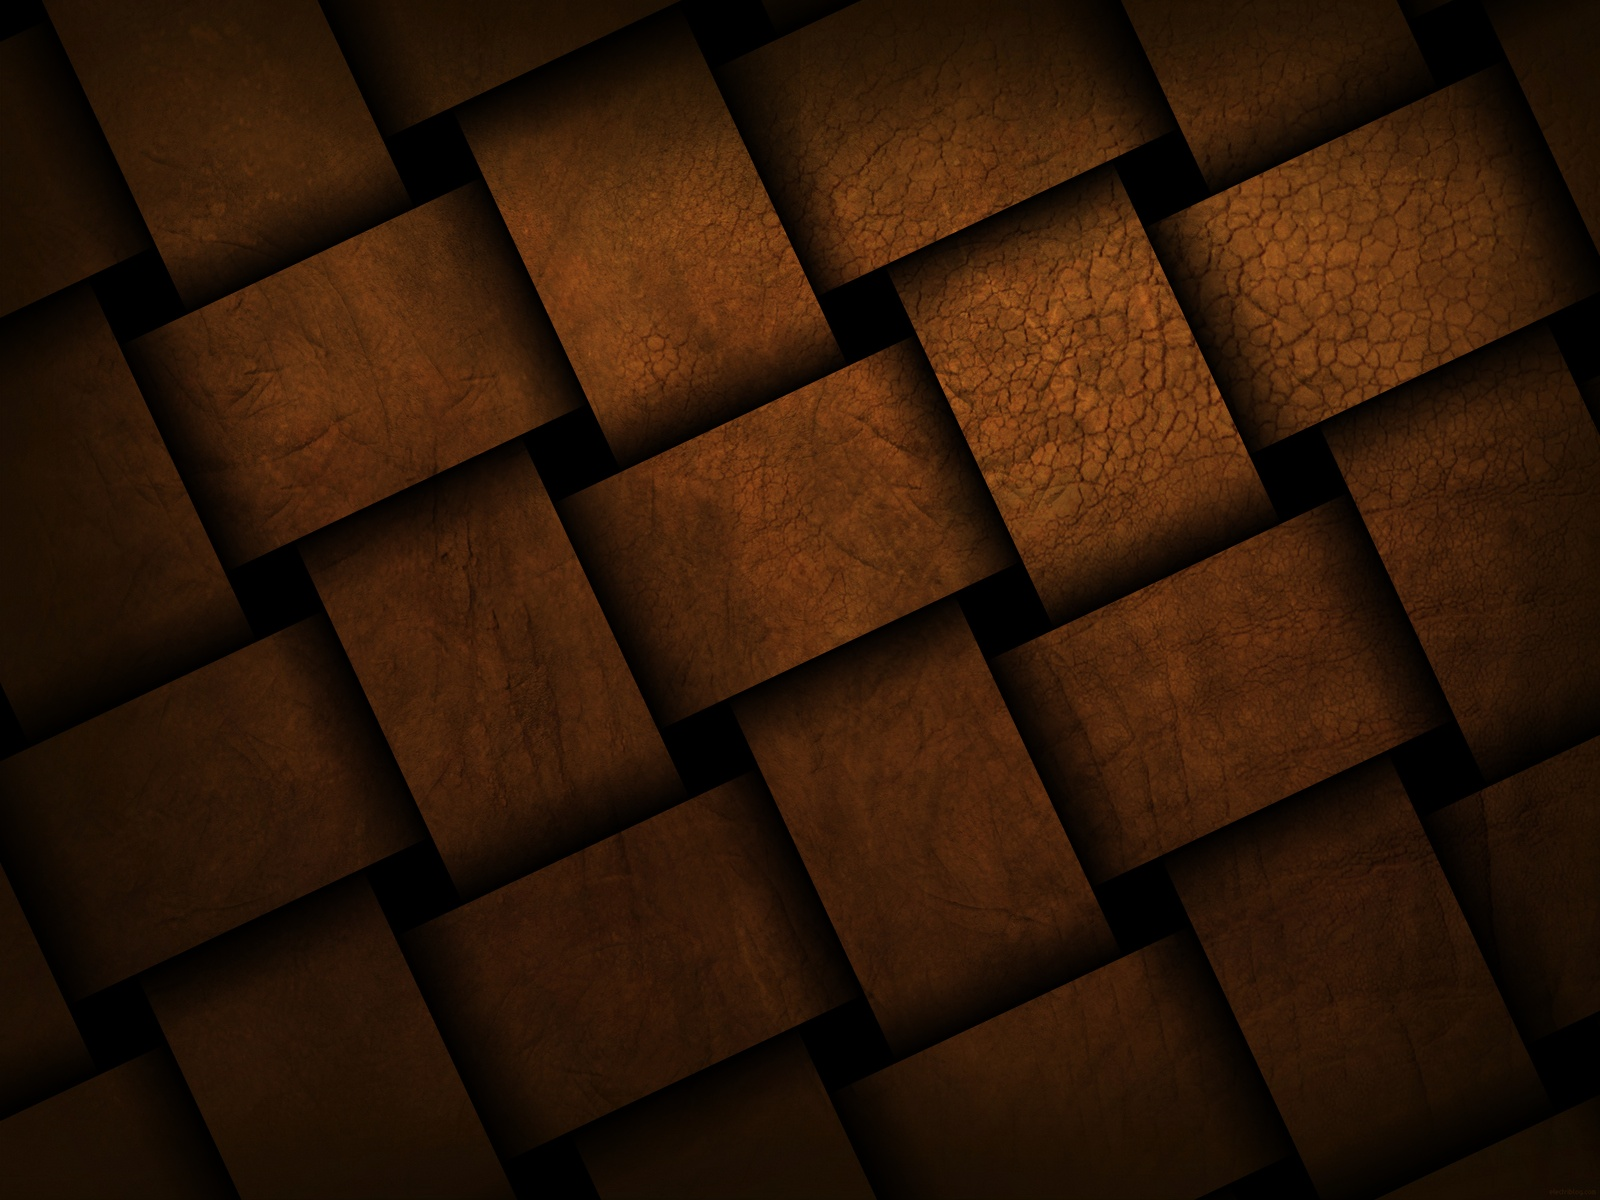 Brown Wallpaper Hd Android Desktop Abstract Iphone 5 Design Backgournd 1600x1200